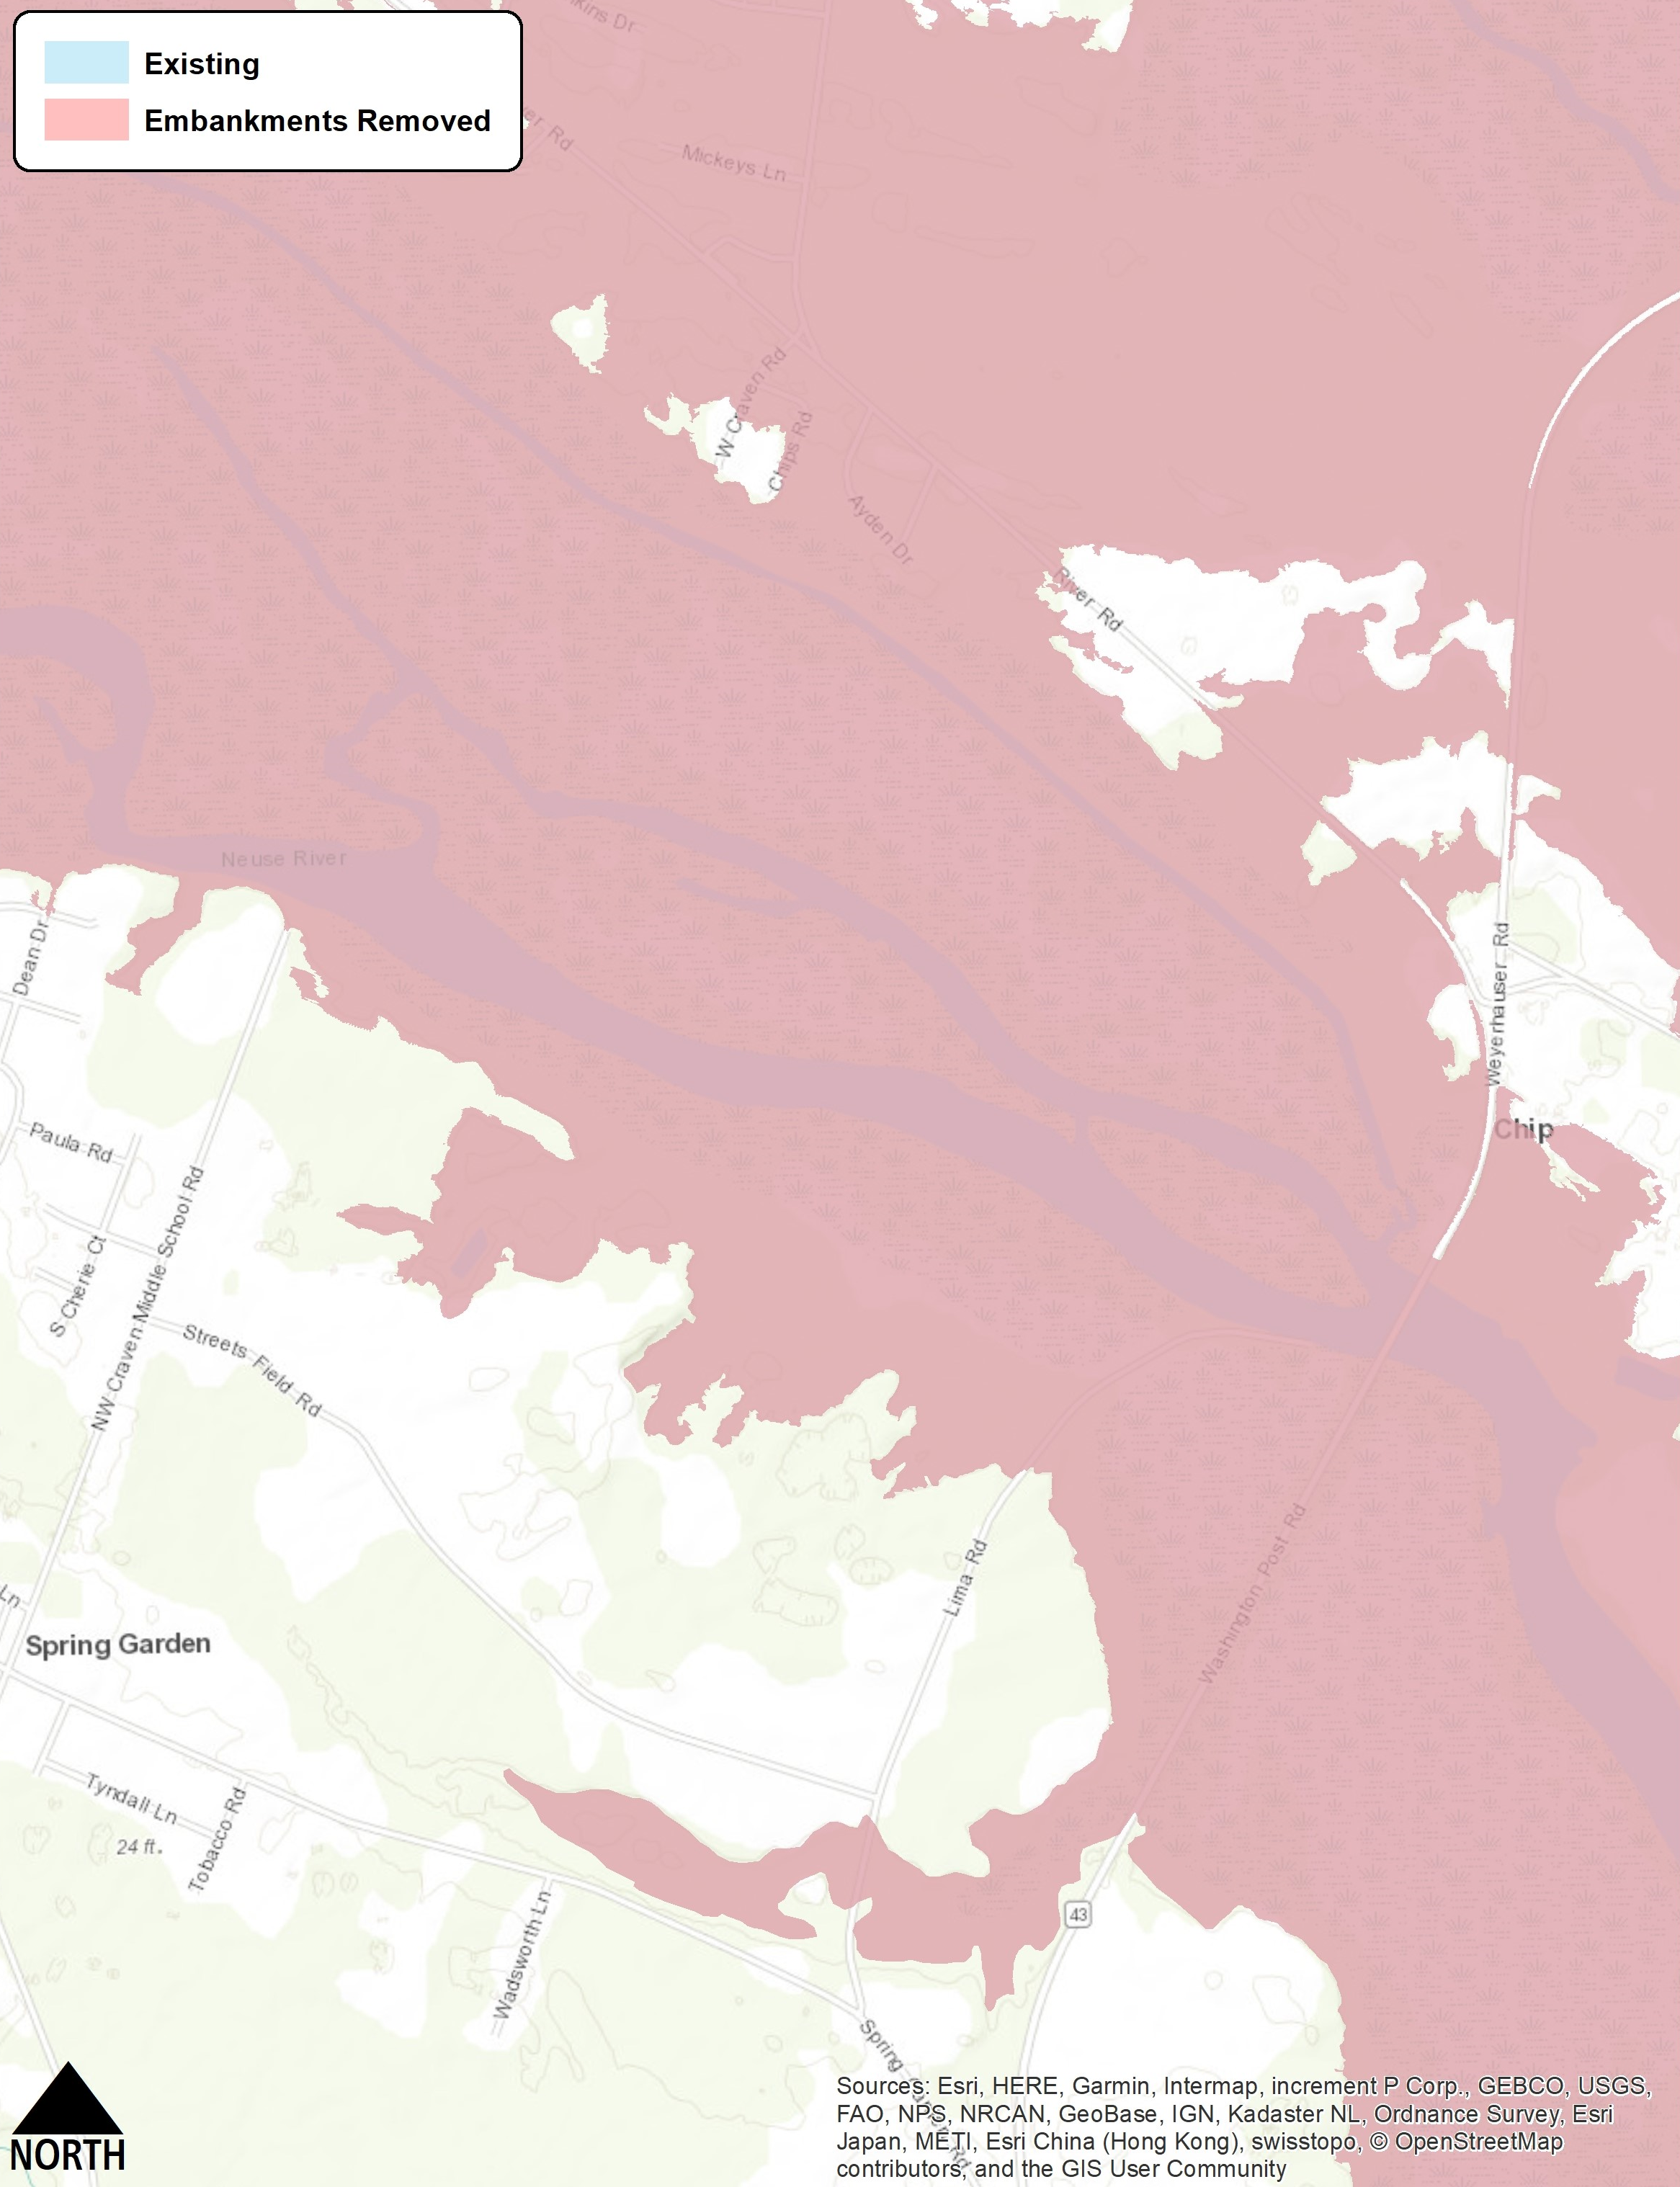 Figure 12: Flood extents for a Hurricane Matthew-scale event comparing the existing condition (blue) to the reduced floodplain extent (pink) that can be achieved by modifying the N.C. 43 Bridge and the downstream Railroad Bridge over Swift Creek. The 0.1-foot reduction in water surface is so minor that it results in no distinguishable change in the areal extent of flooding.